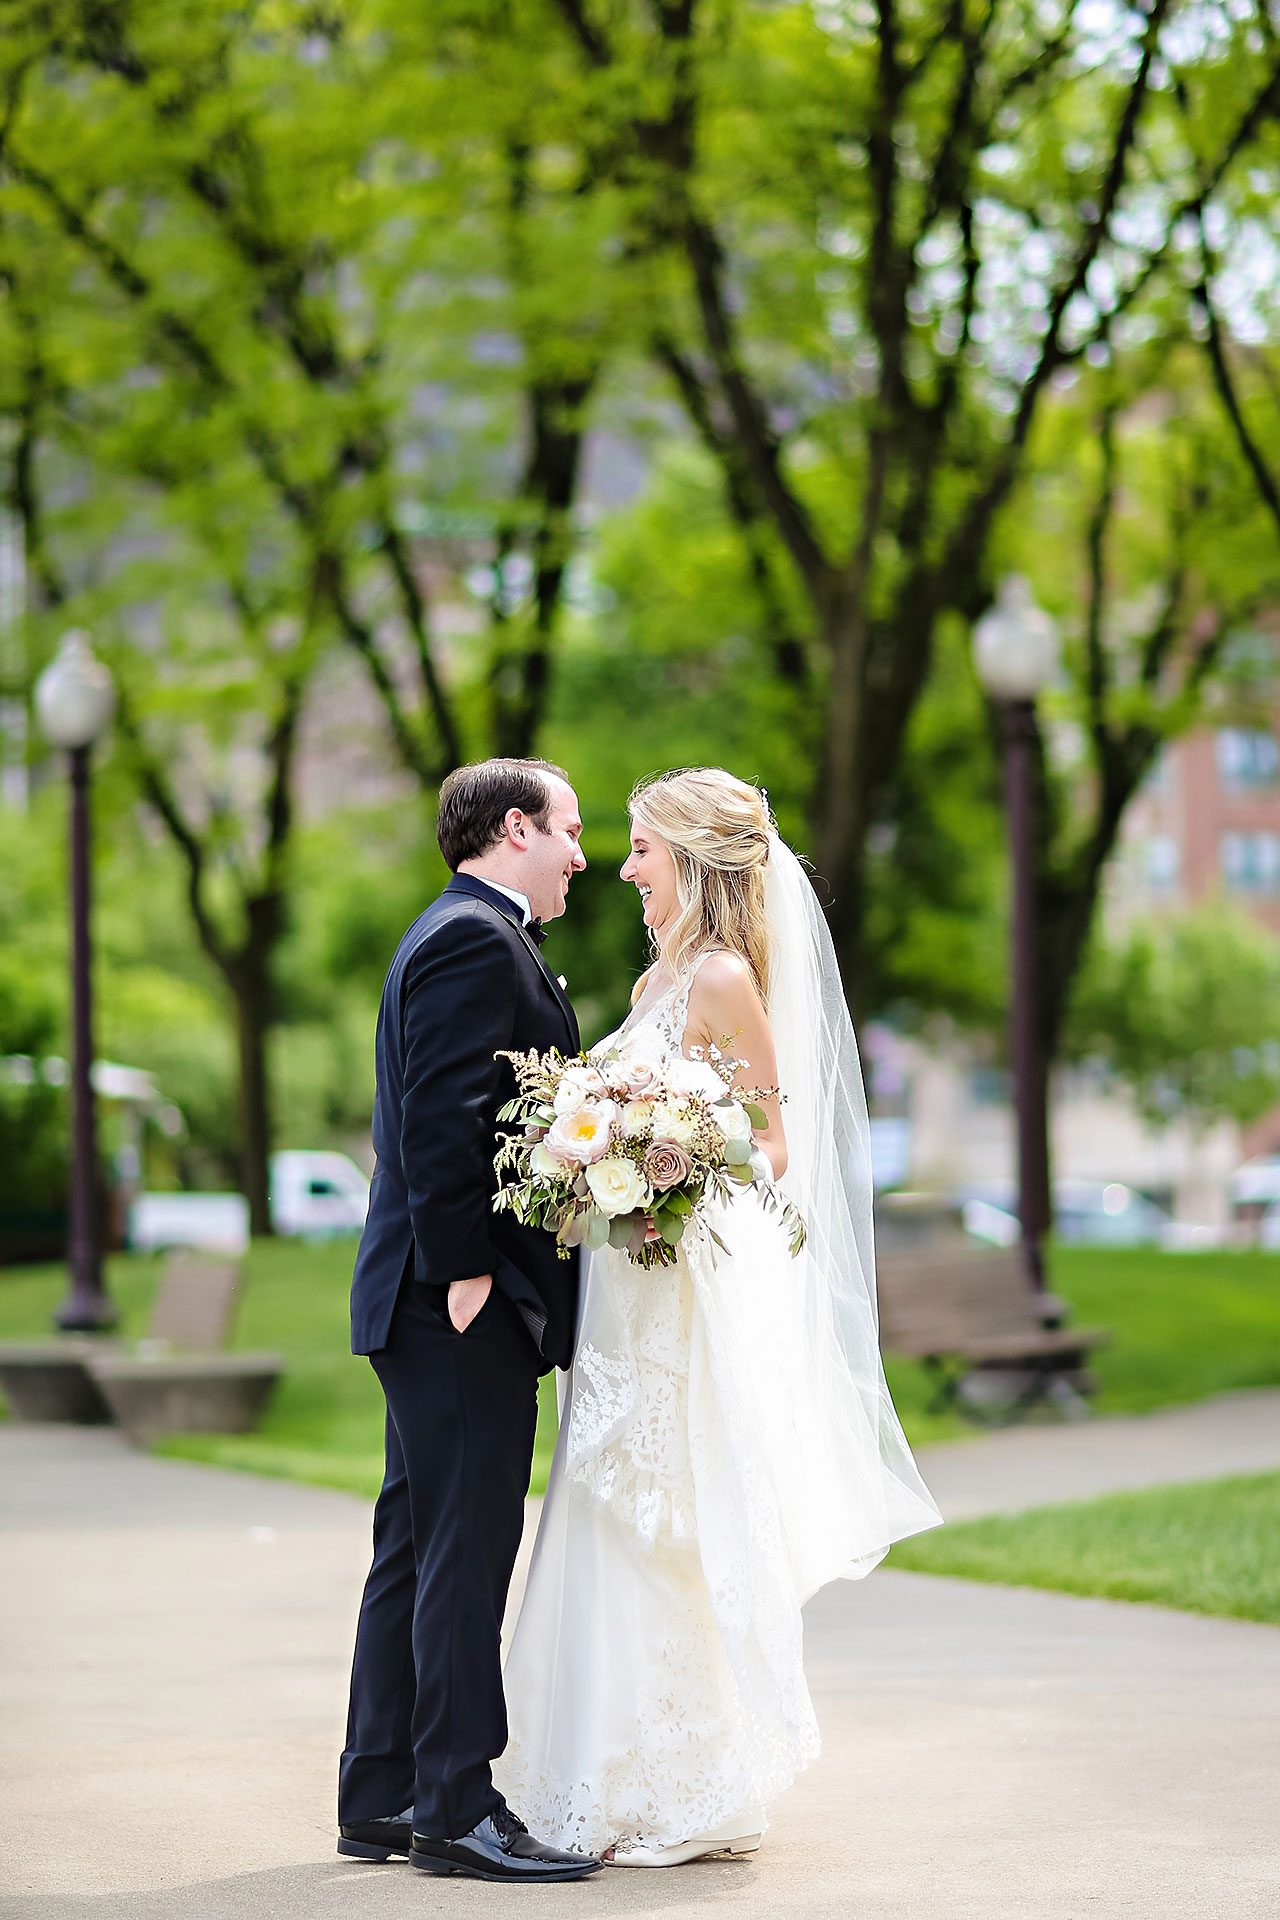 Allison Jeff Union Station Crowne Plaza Indianapolis wedding 193